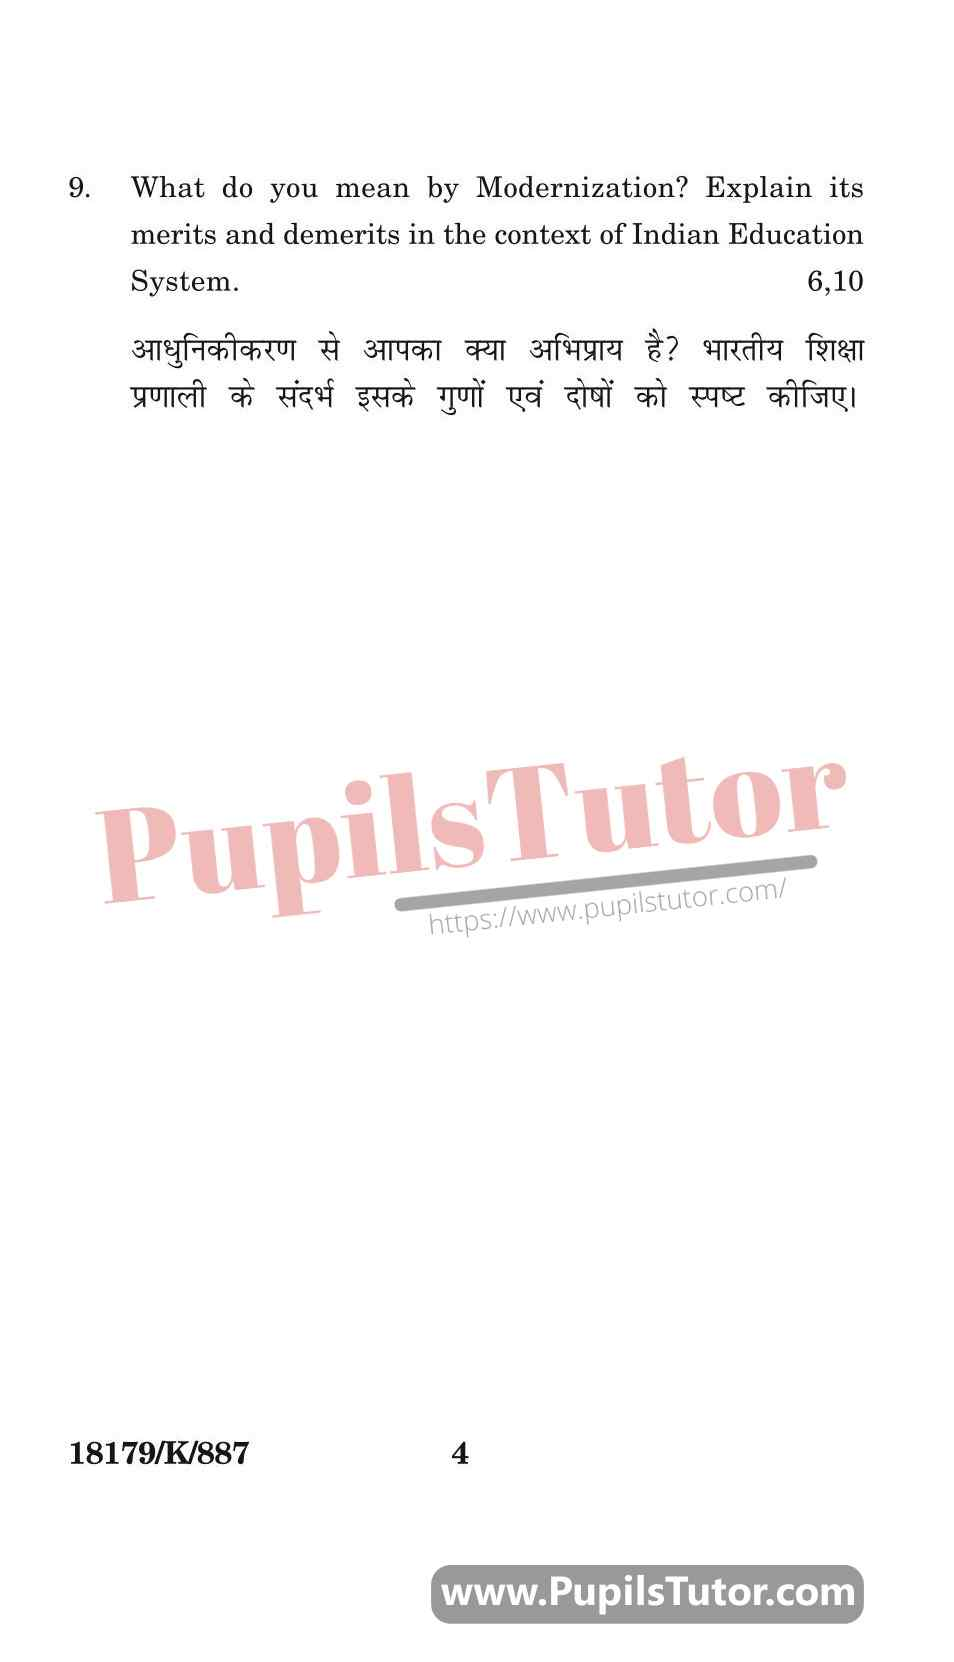 KUK (Kurukshetra University, Haryana) Contemporary India And Education Question Paper 2020 For B.Ed 1st And 2nd Year And All The 4 Semesters In English And Hindi Medium Free Download PDF - Page 4 - pupilstutor